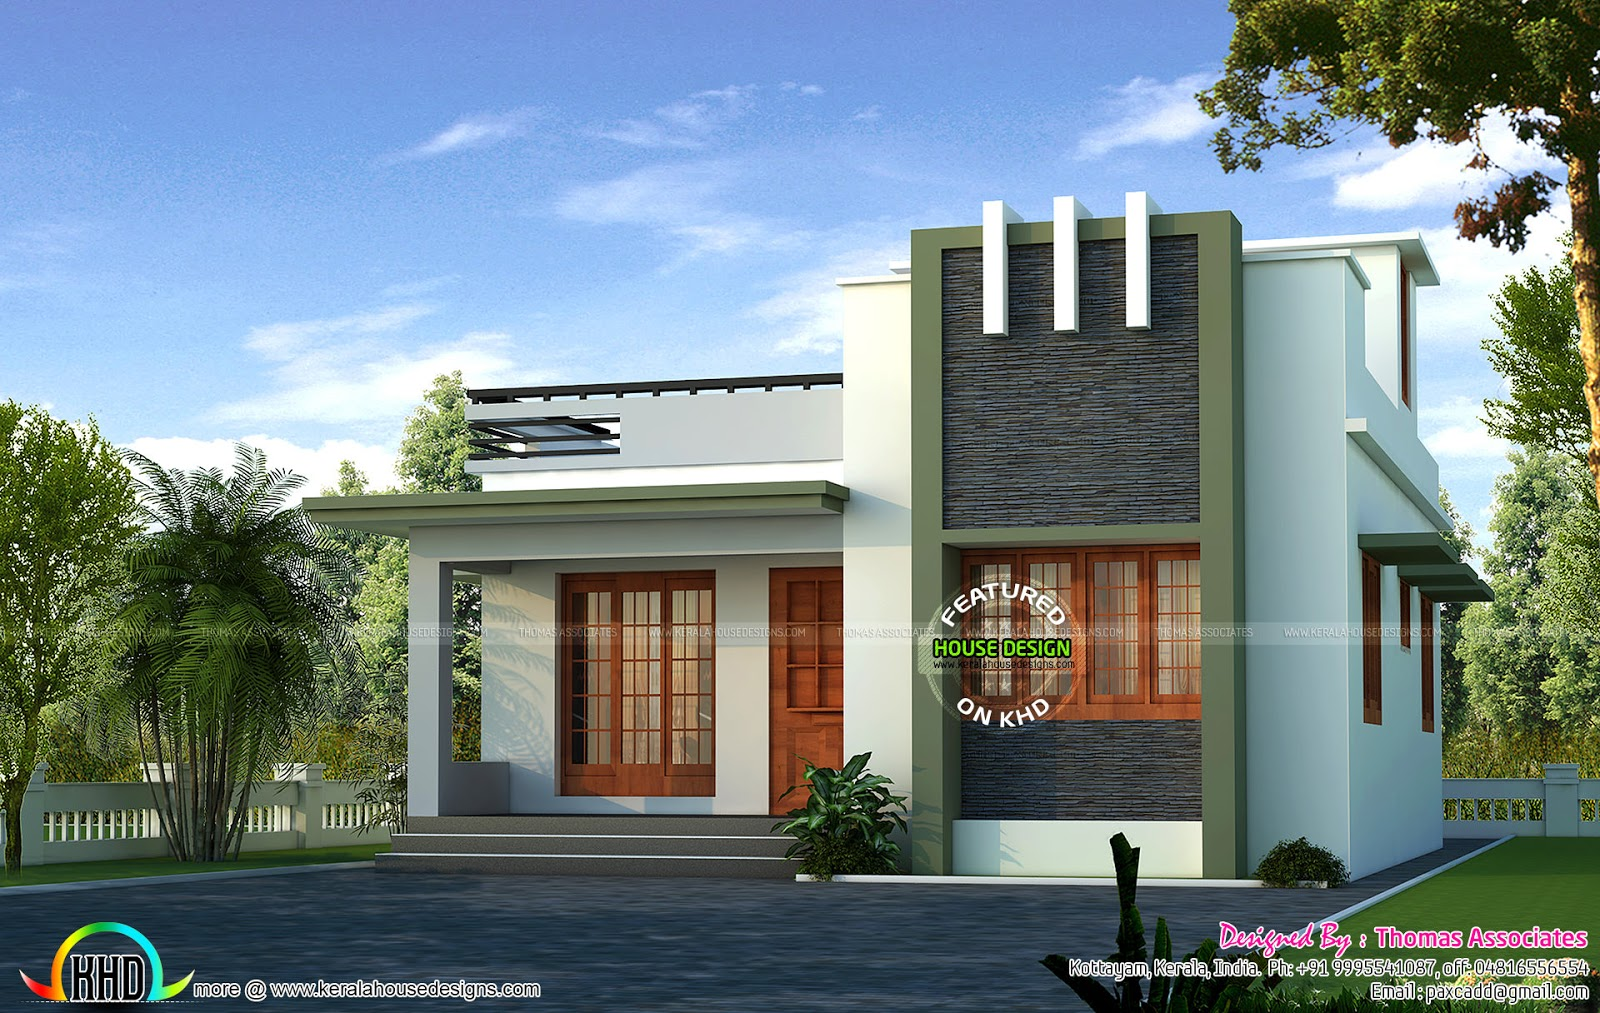 35 small and simple but beautiful house with roof deck - Home design and plans ...